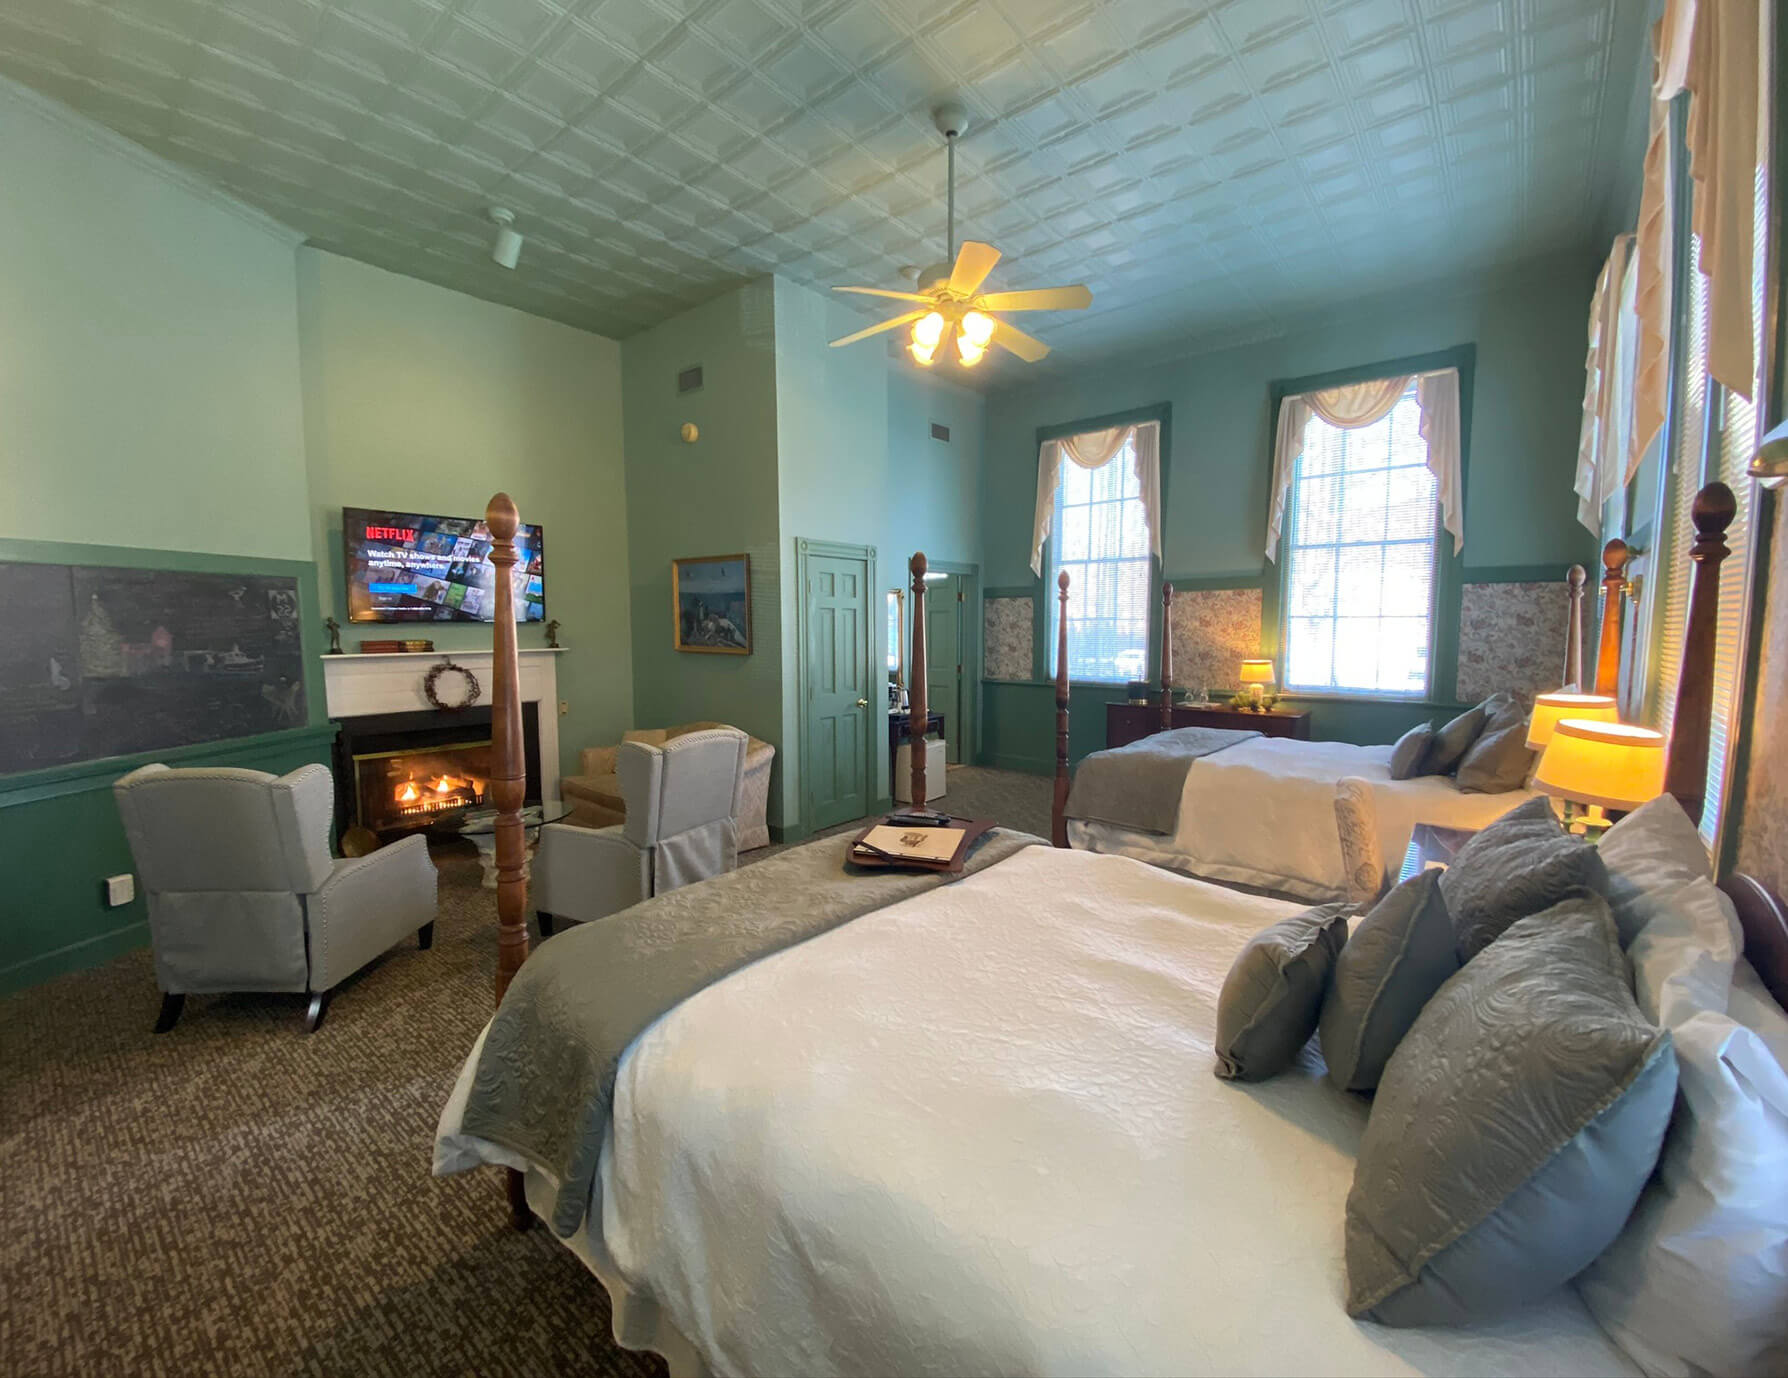 La Sedgwick room beds and seating area - Hotel in Lee, Massachusetts